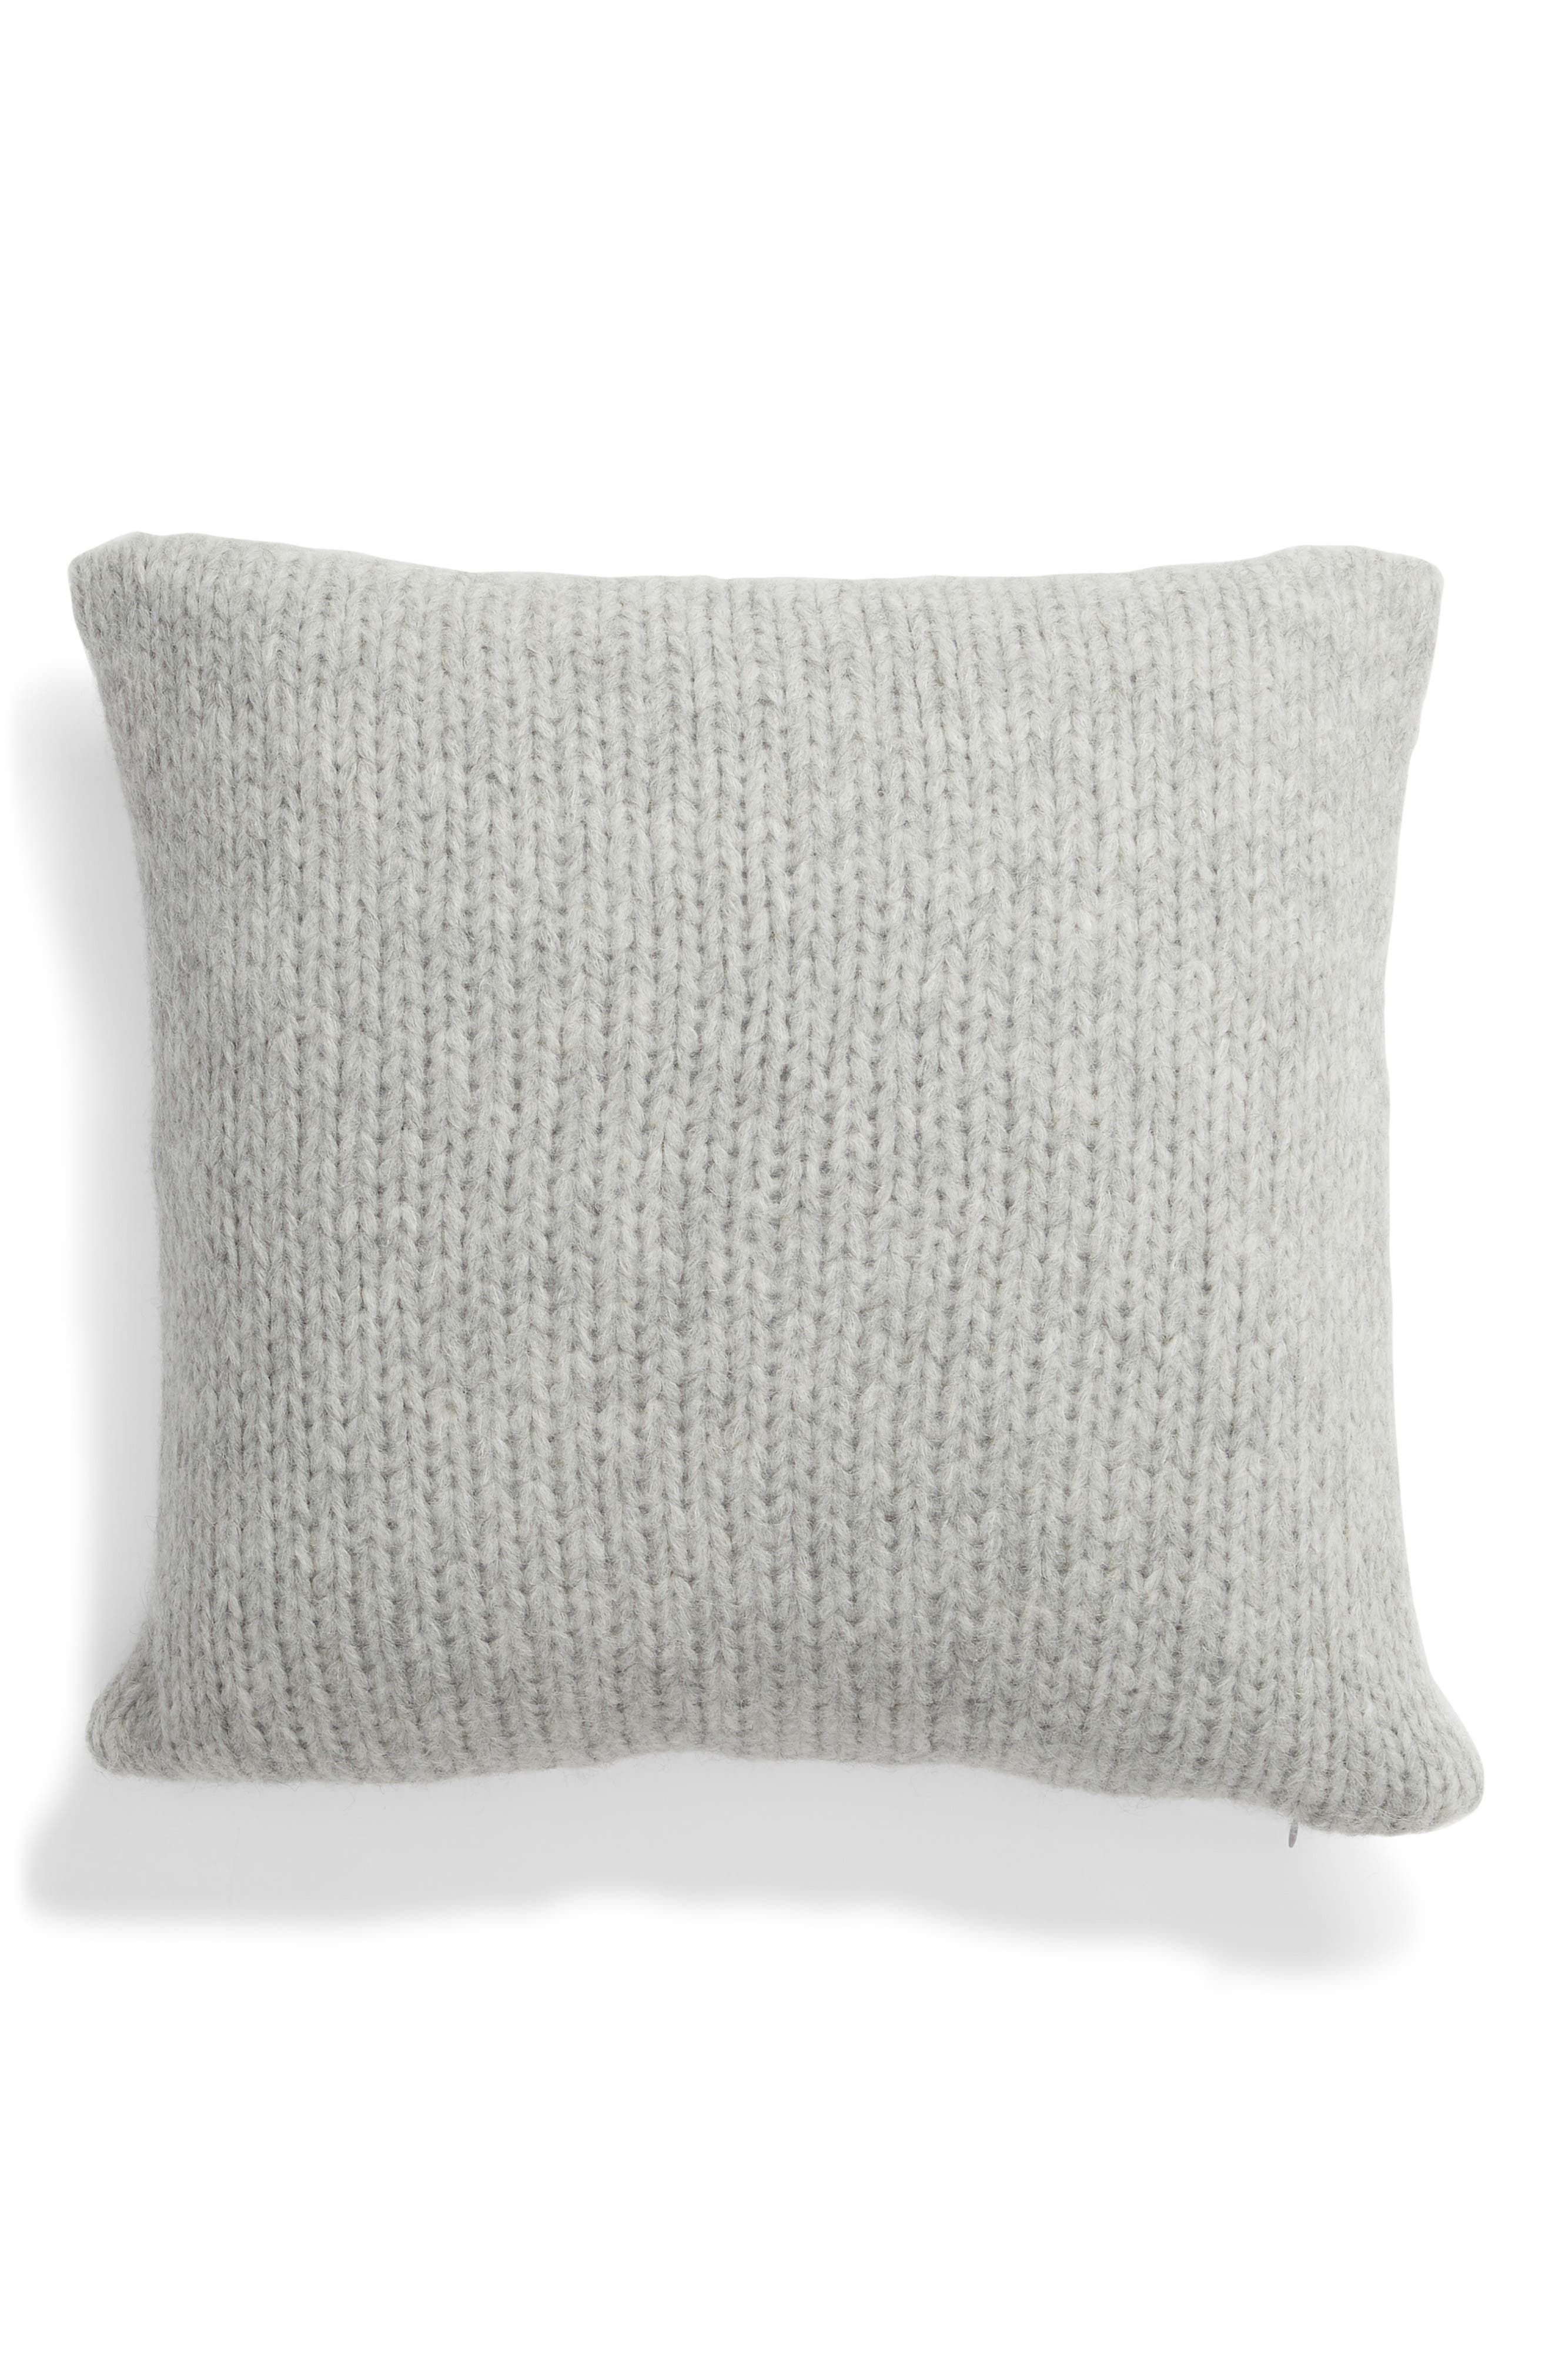 Chunky Knit Alpaca Blend Accent Pillow, Main, color, GREY HEATHER